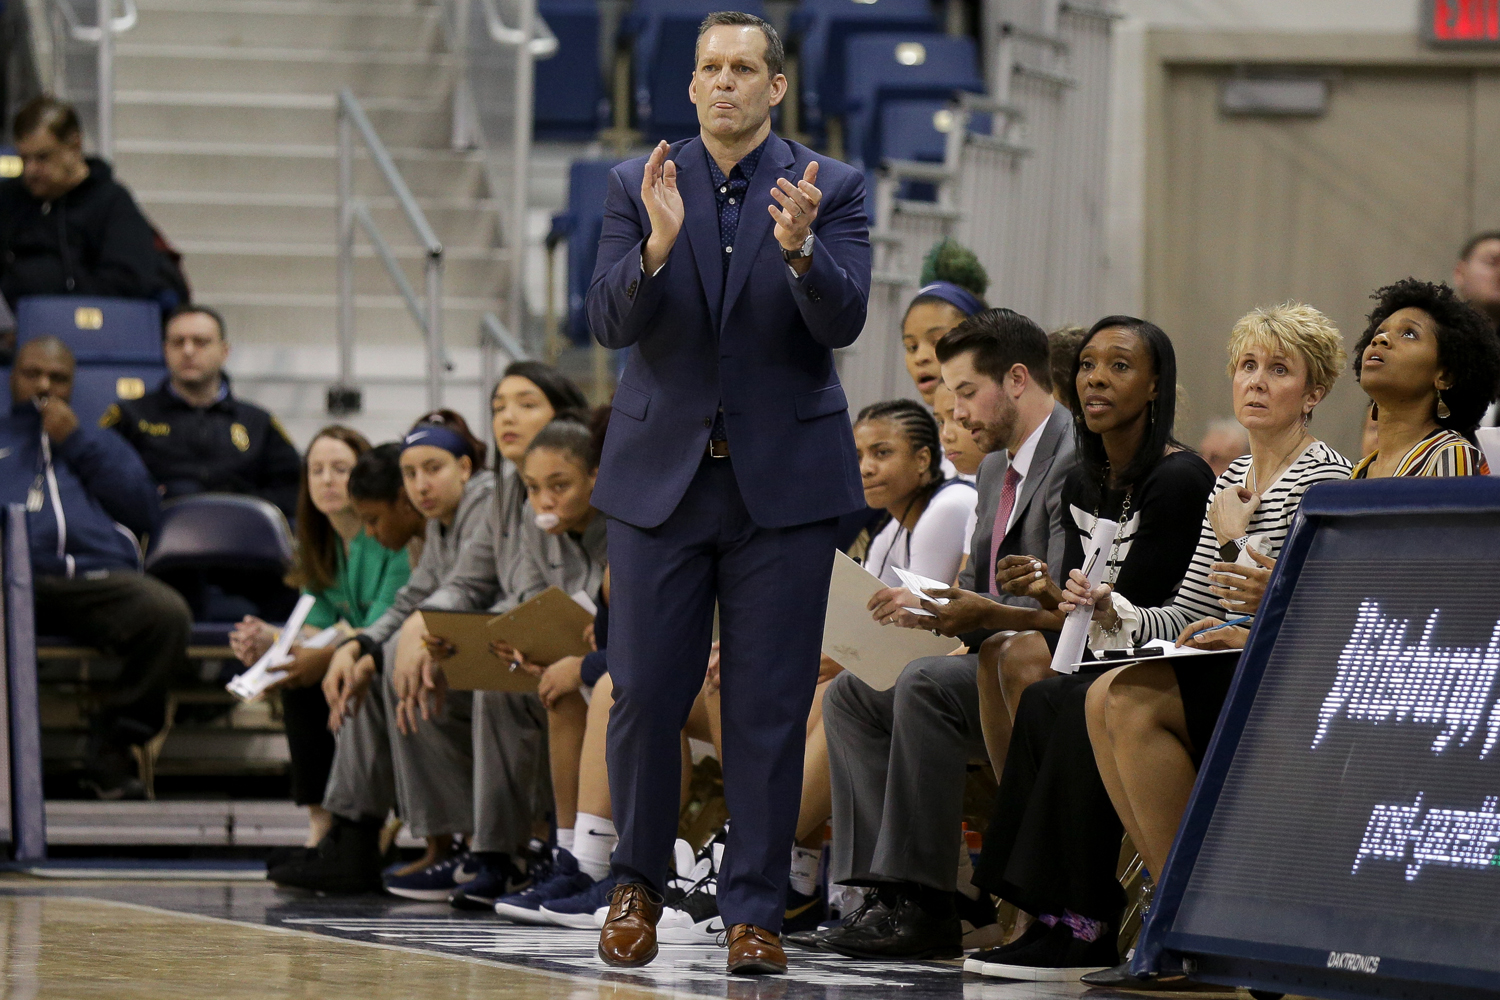 Women's basketball head coach Lance White's team currently sits near the bottom of the ACC in the No. 14 seed. The Panthers have won two of their 16 conference games.